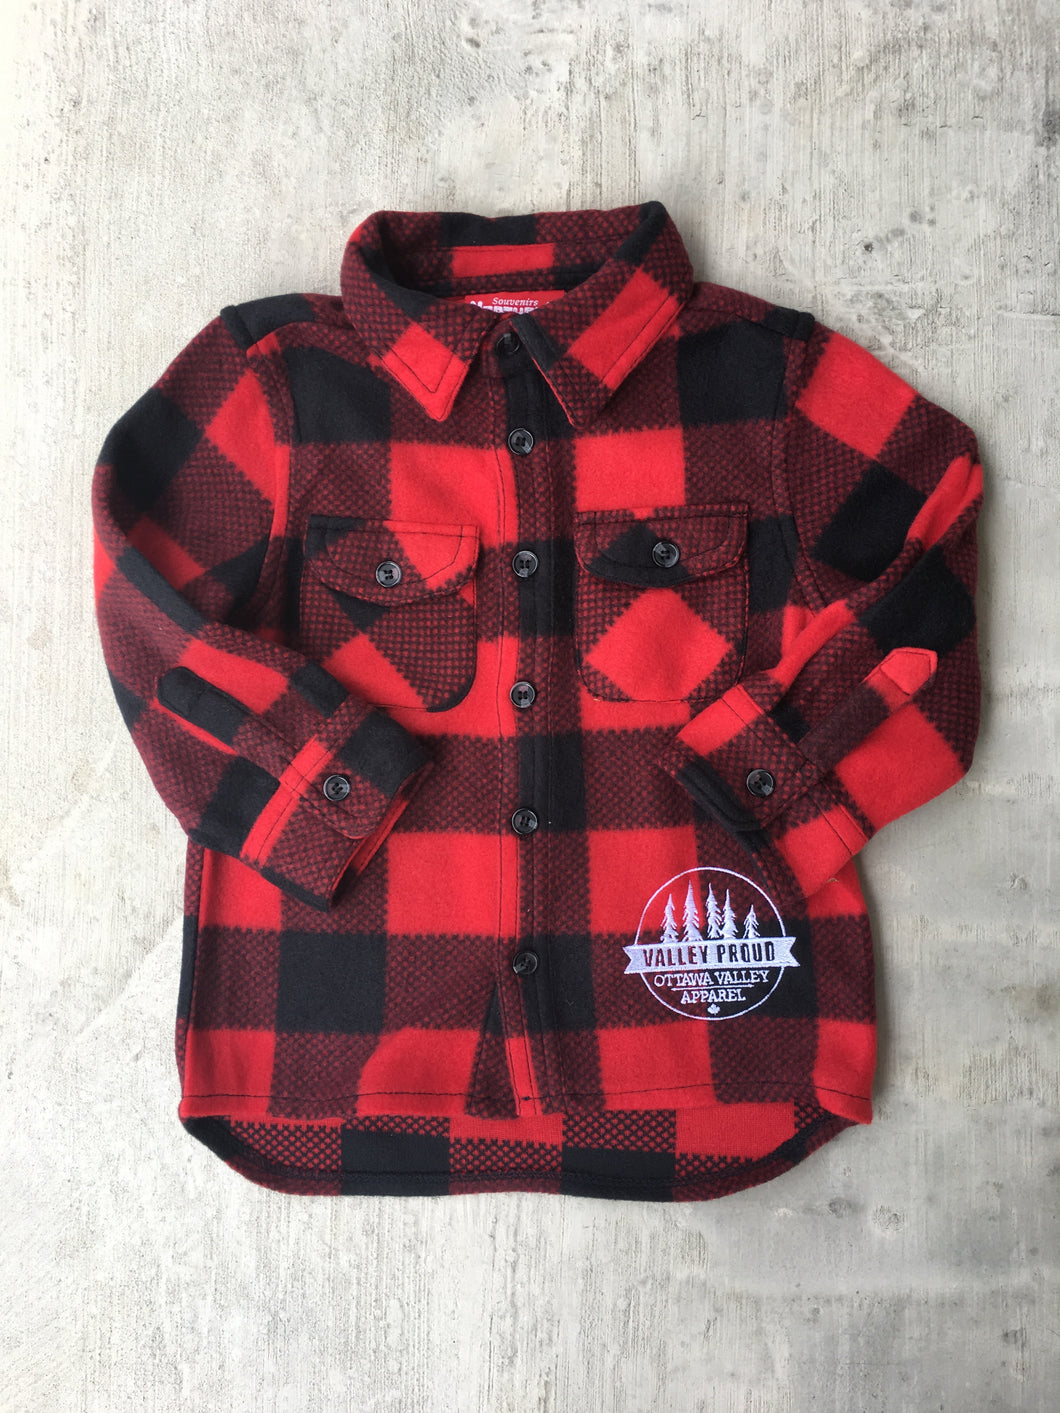 Children's Classic Valley Proud Lumber Jacket - Black & Red